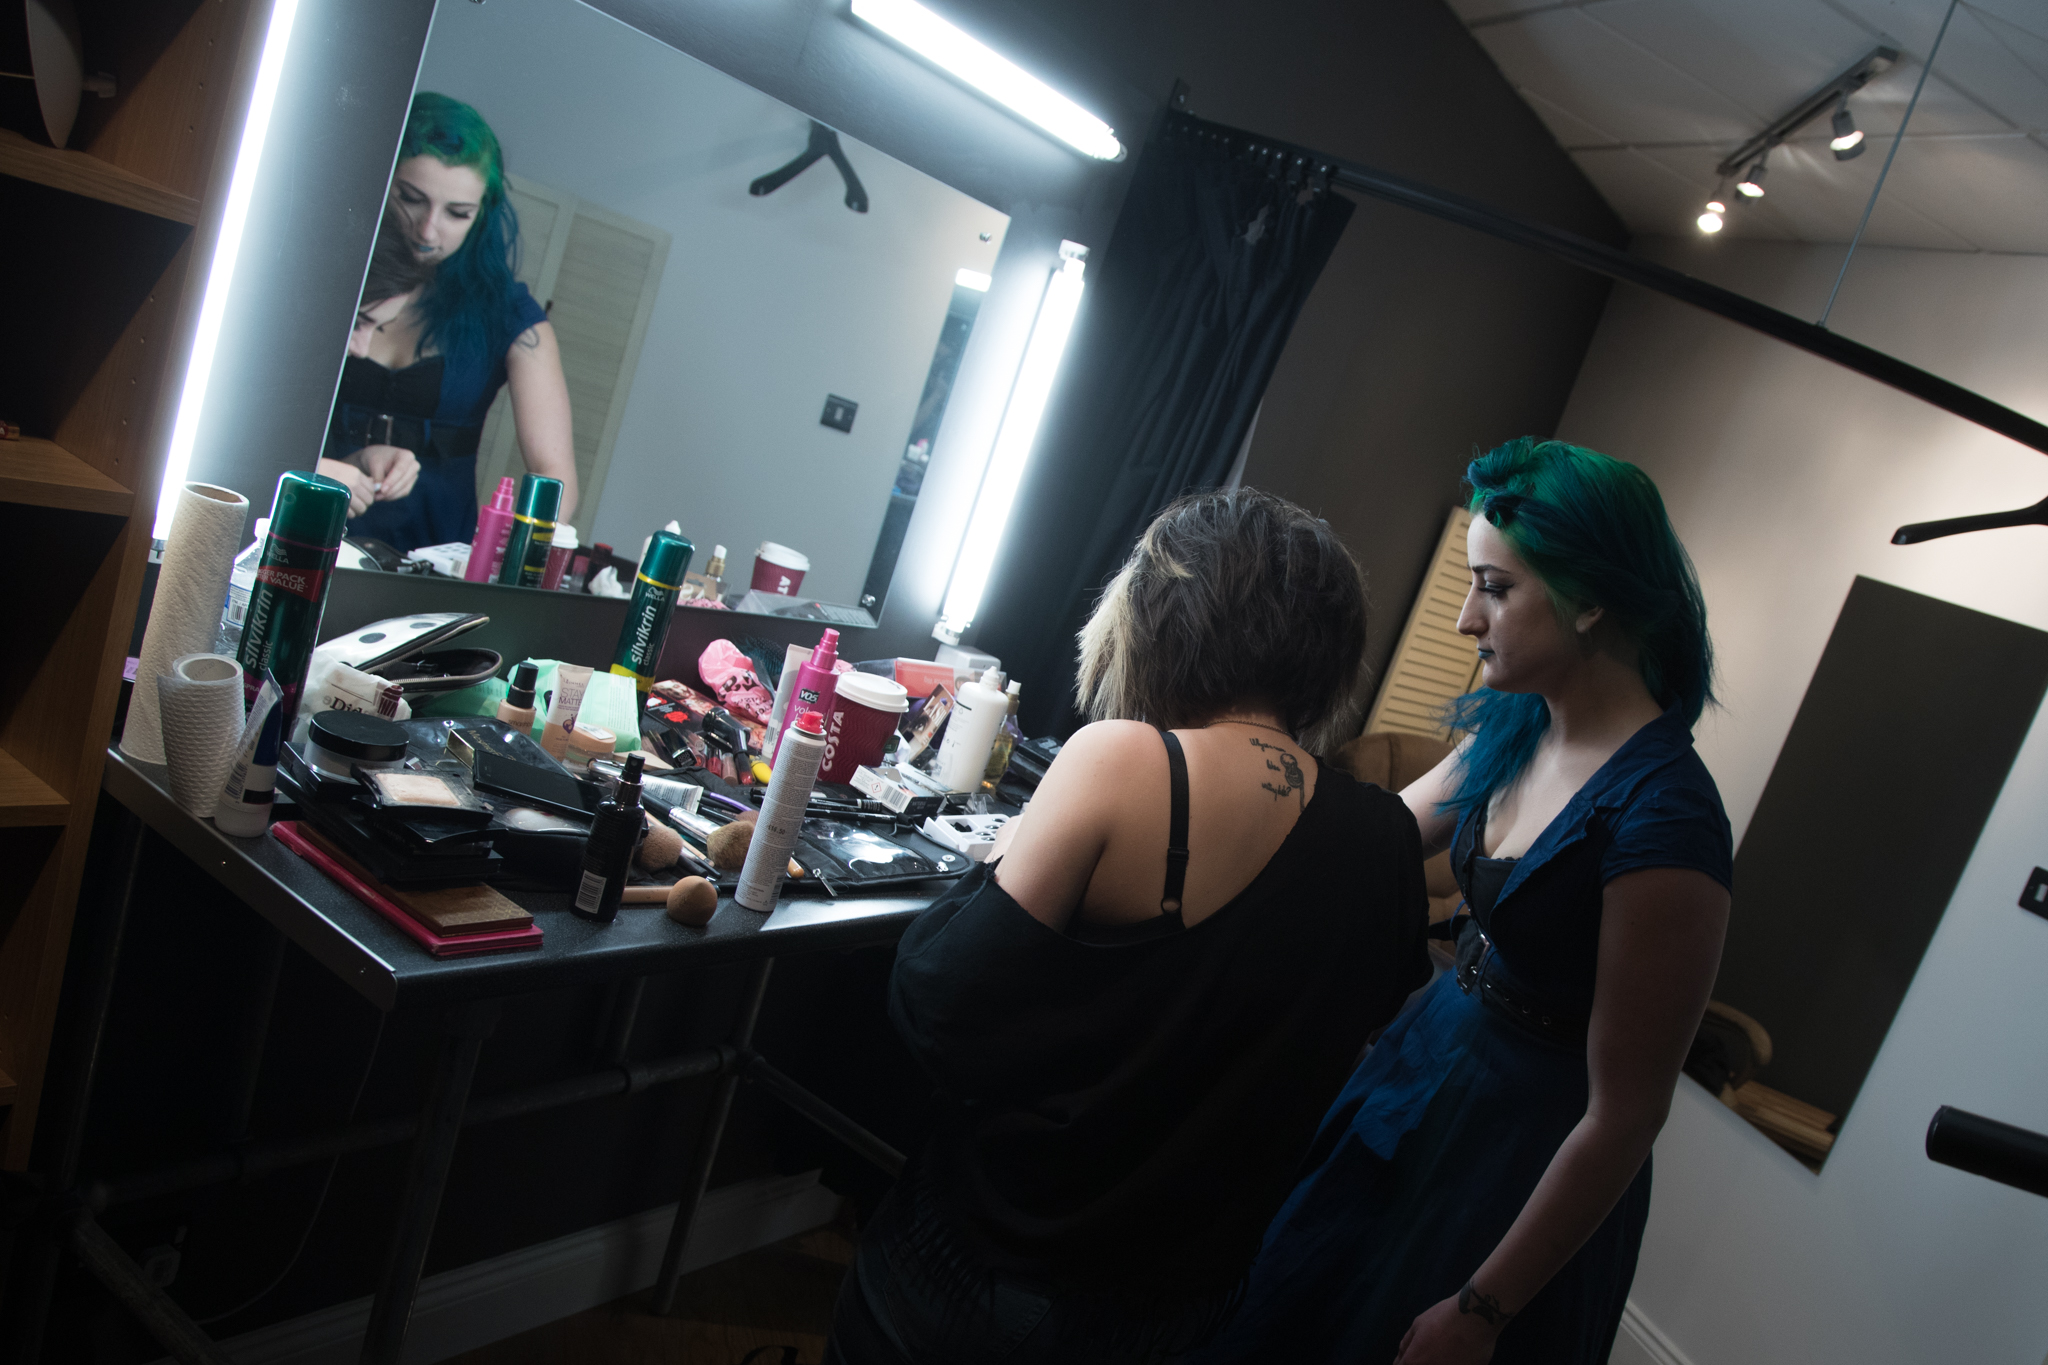 The Makeup area, a large mirror and table with power, and dimming surround light and a raised chair. The dressing room is visible on the right, it has a curtain along with mirror, bench, clothes rail and it's own light.